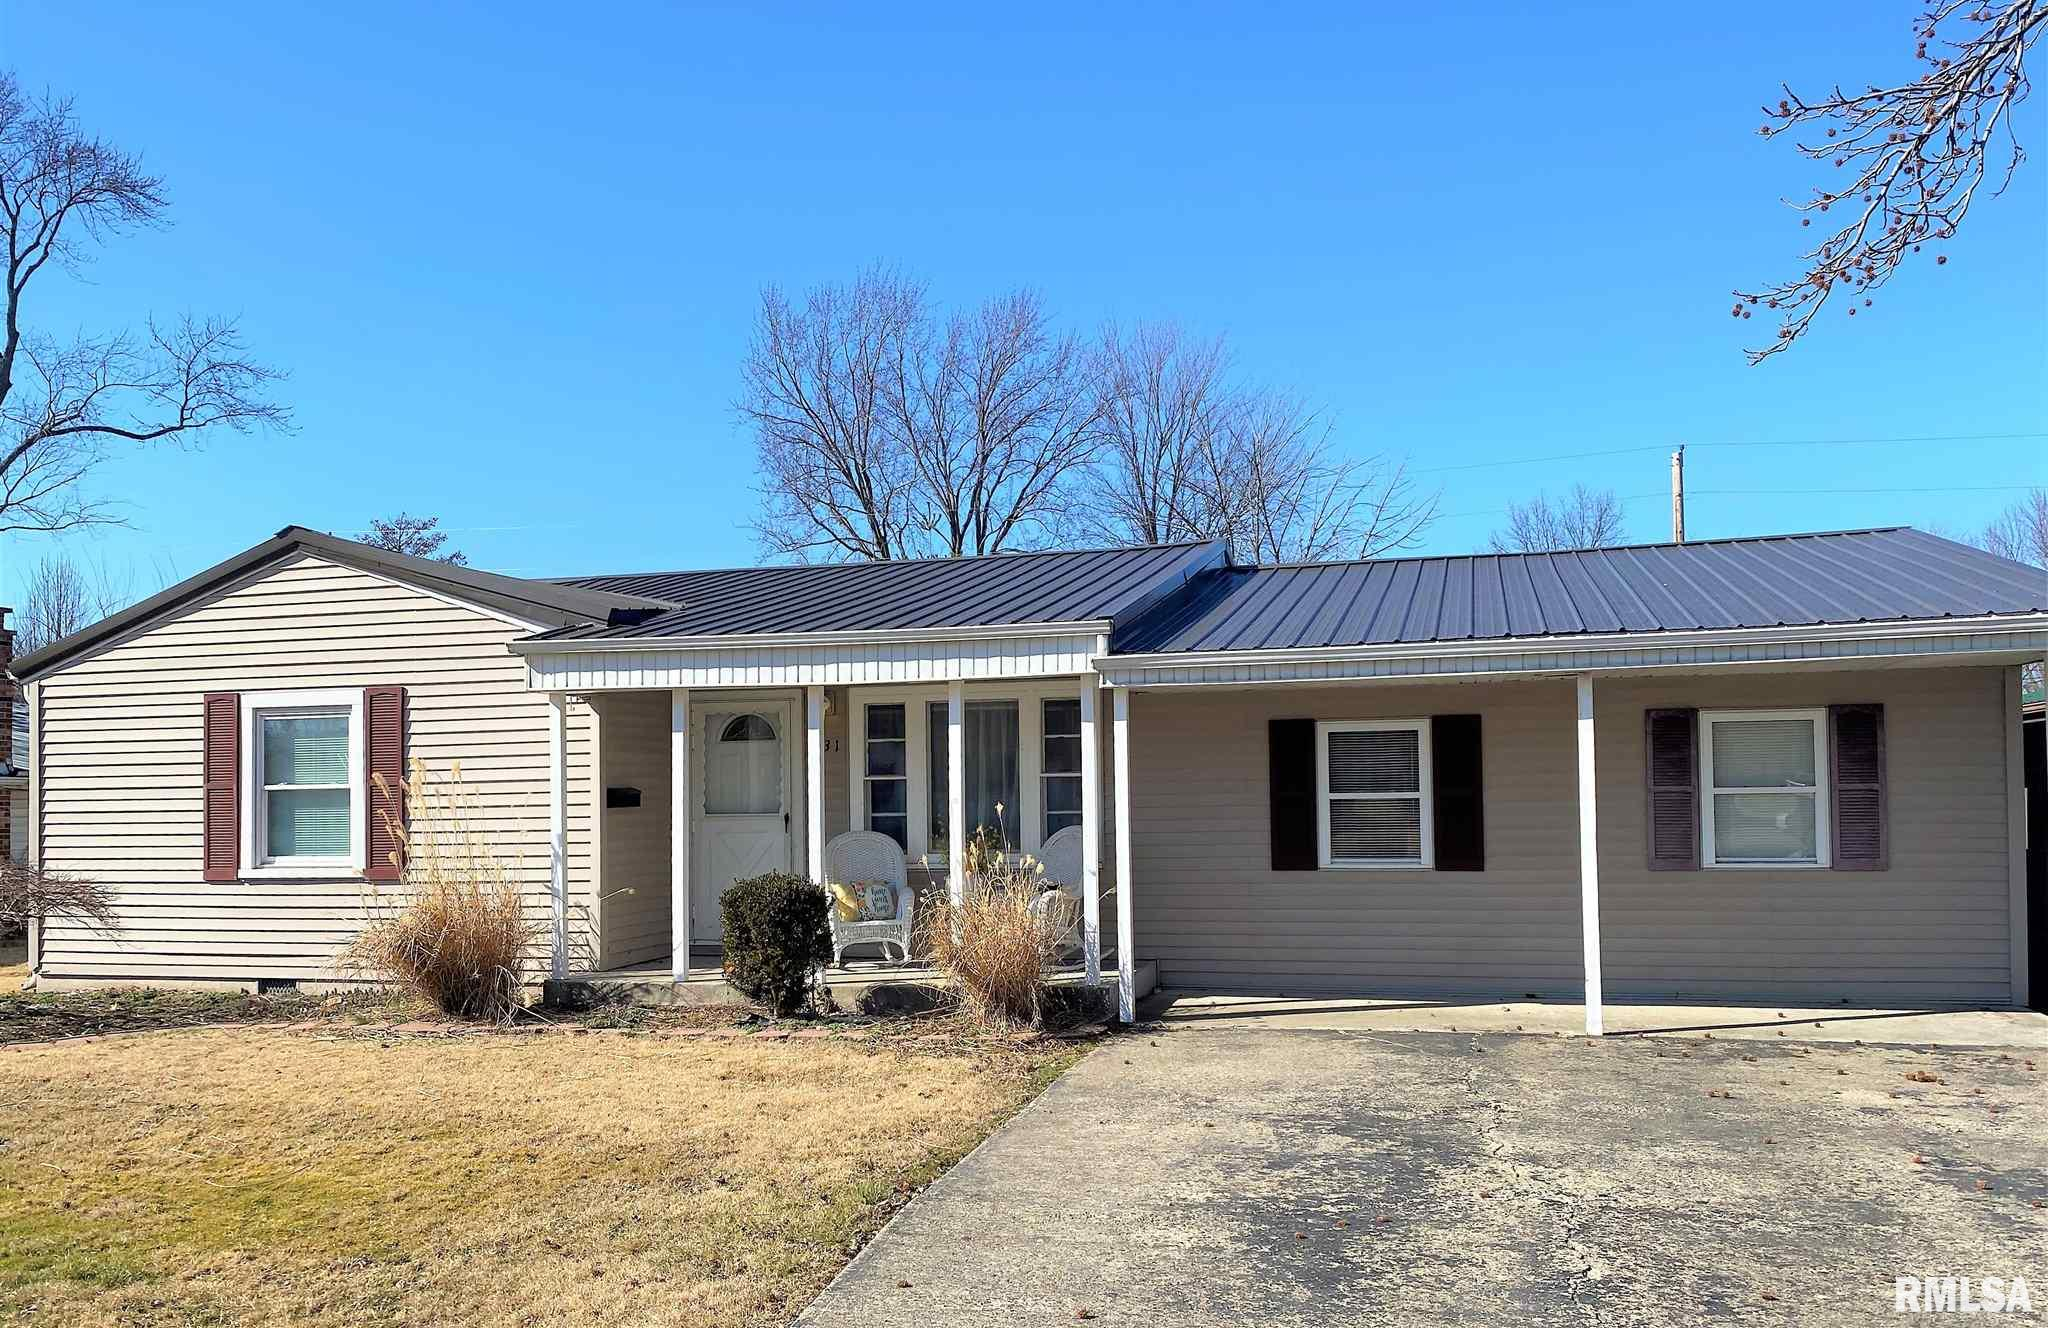 731 E 4TH Property Photo - Flora, IL real estate listing